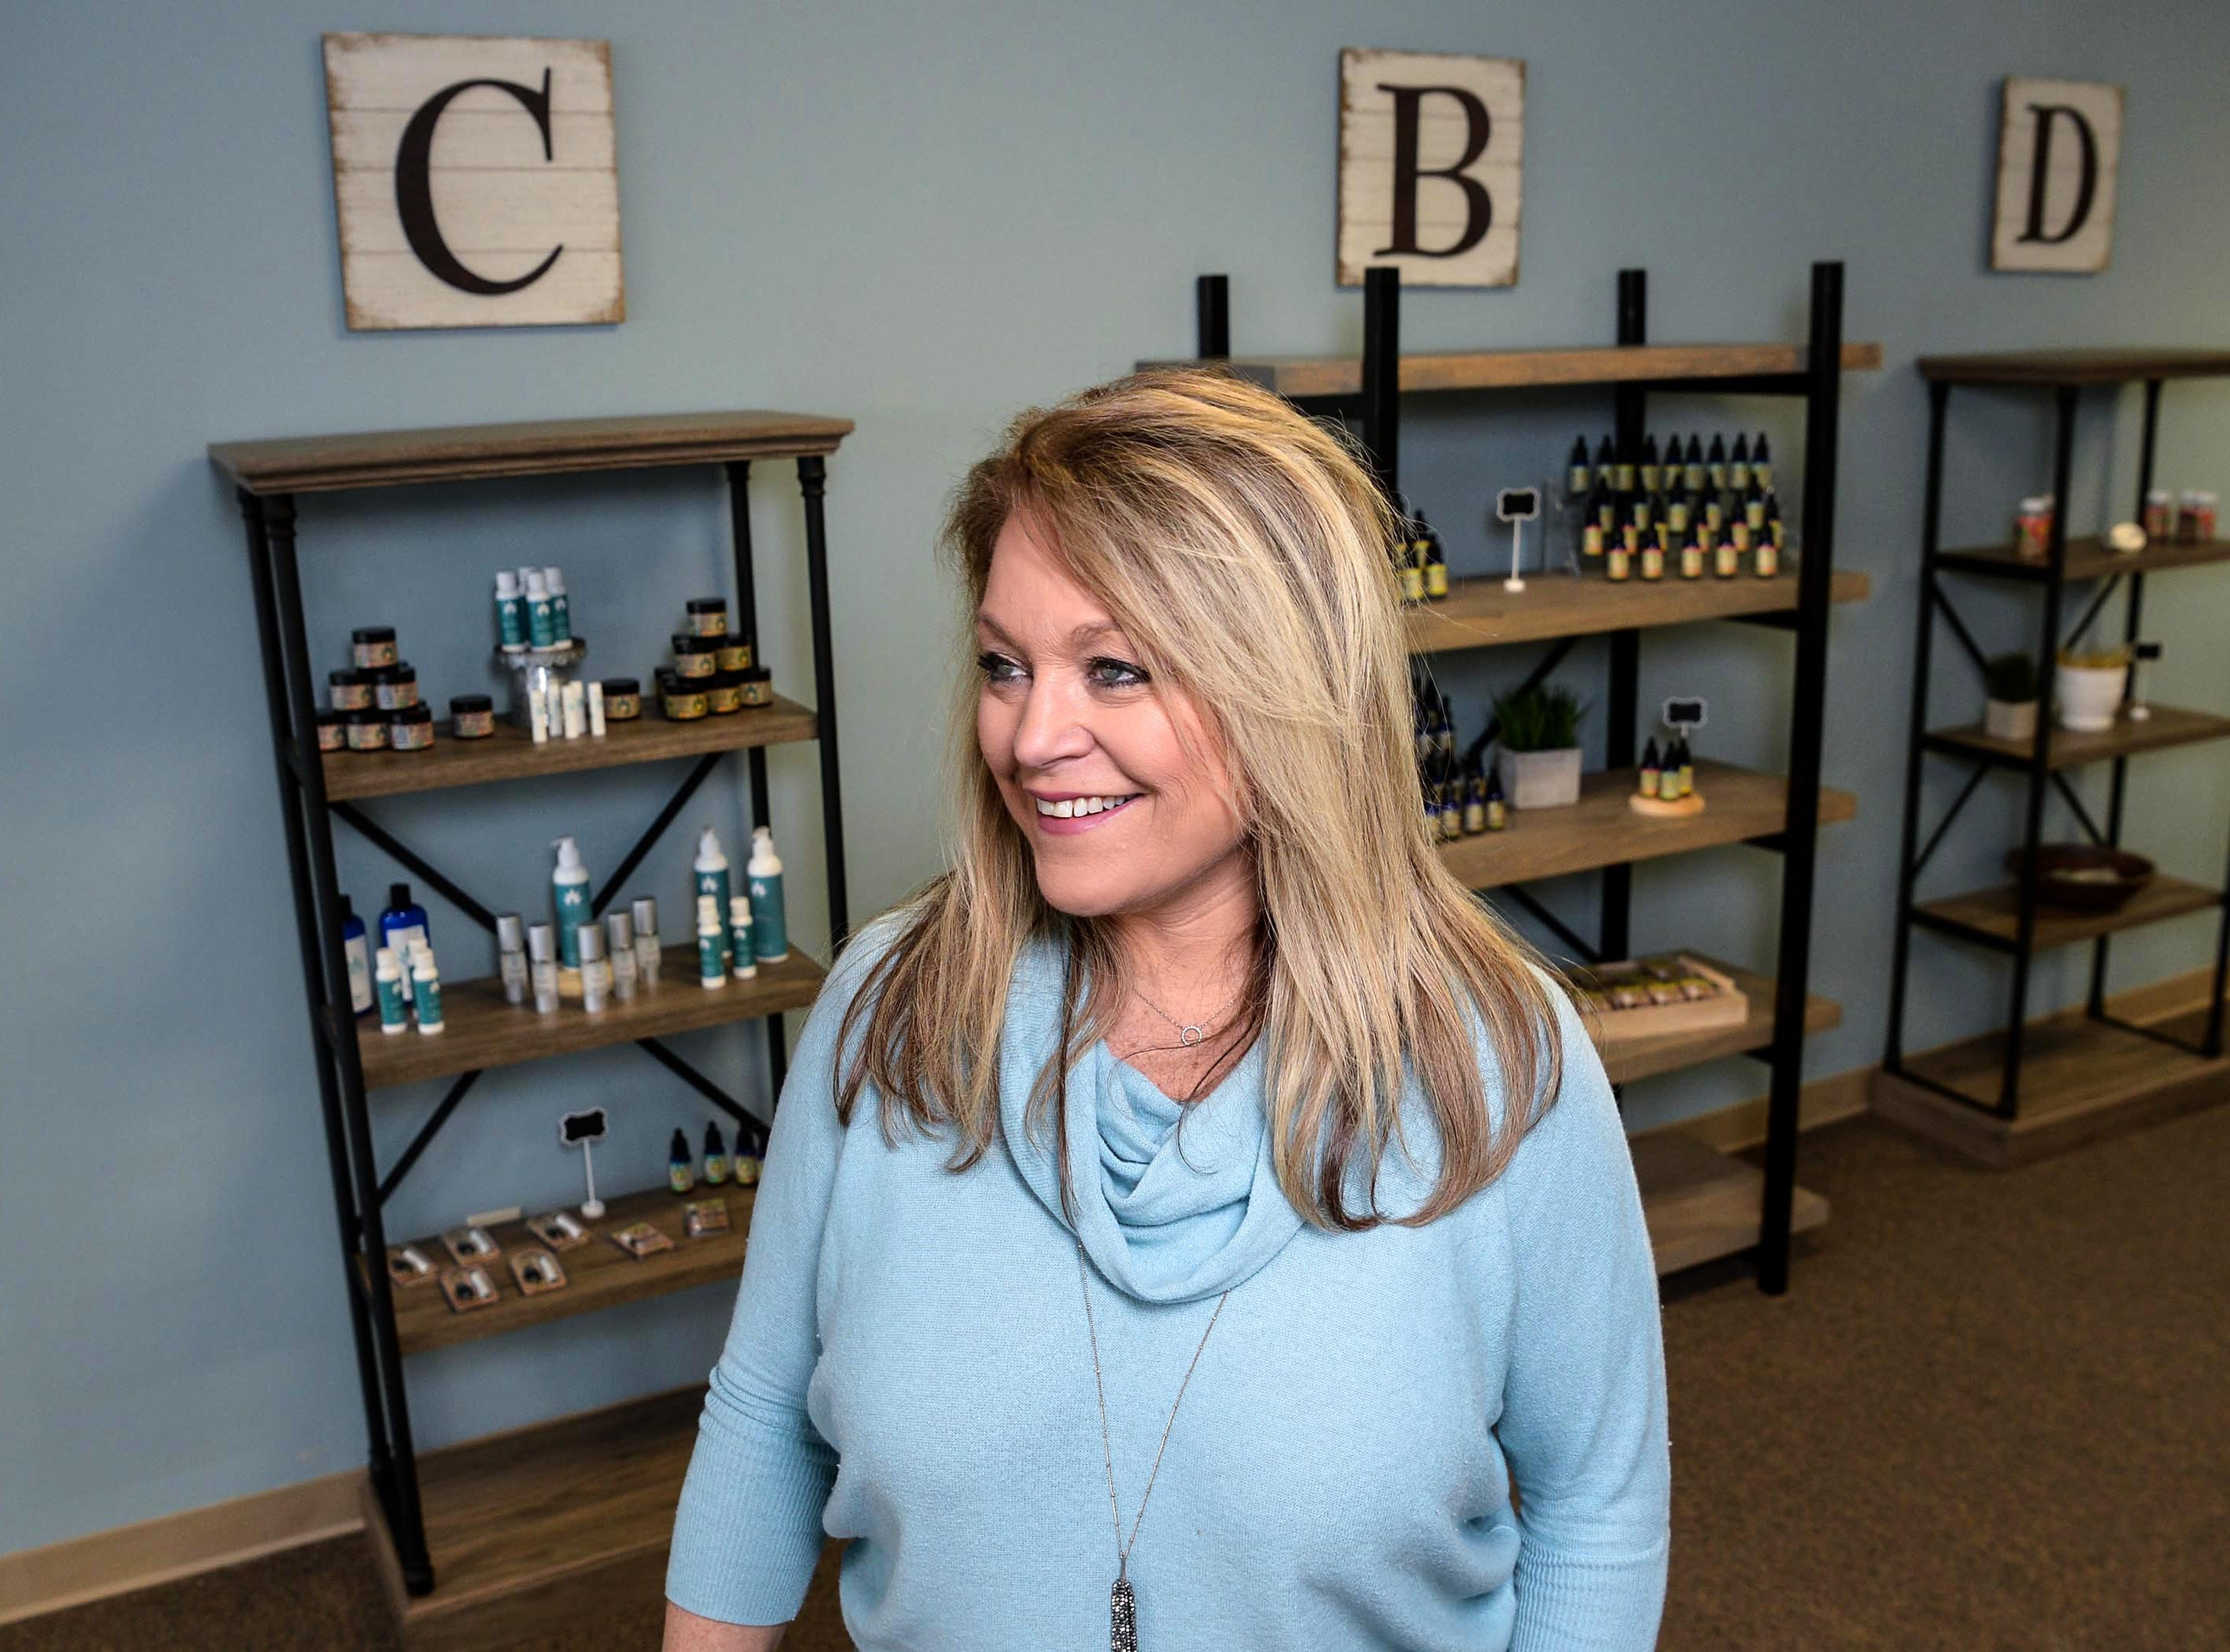 Alison Sheppard gets ready to open the Your CBD Store Anderson on Clemson Boulevard Monday, February 25. The use of the CBD (Cannabidiol) is what some use legally from cannabis plants for ailments including anxiety, seizures and pain, said Sheppard.